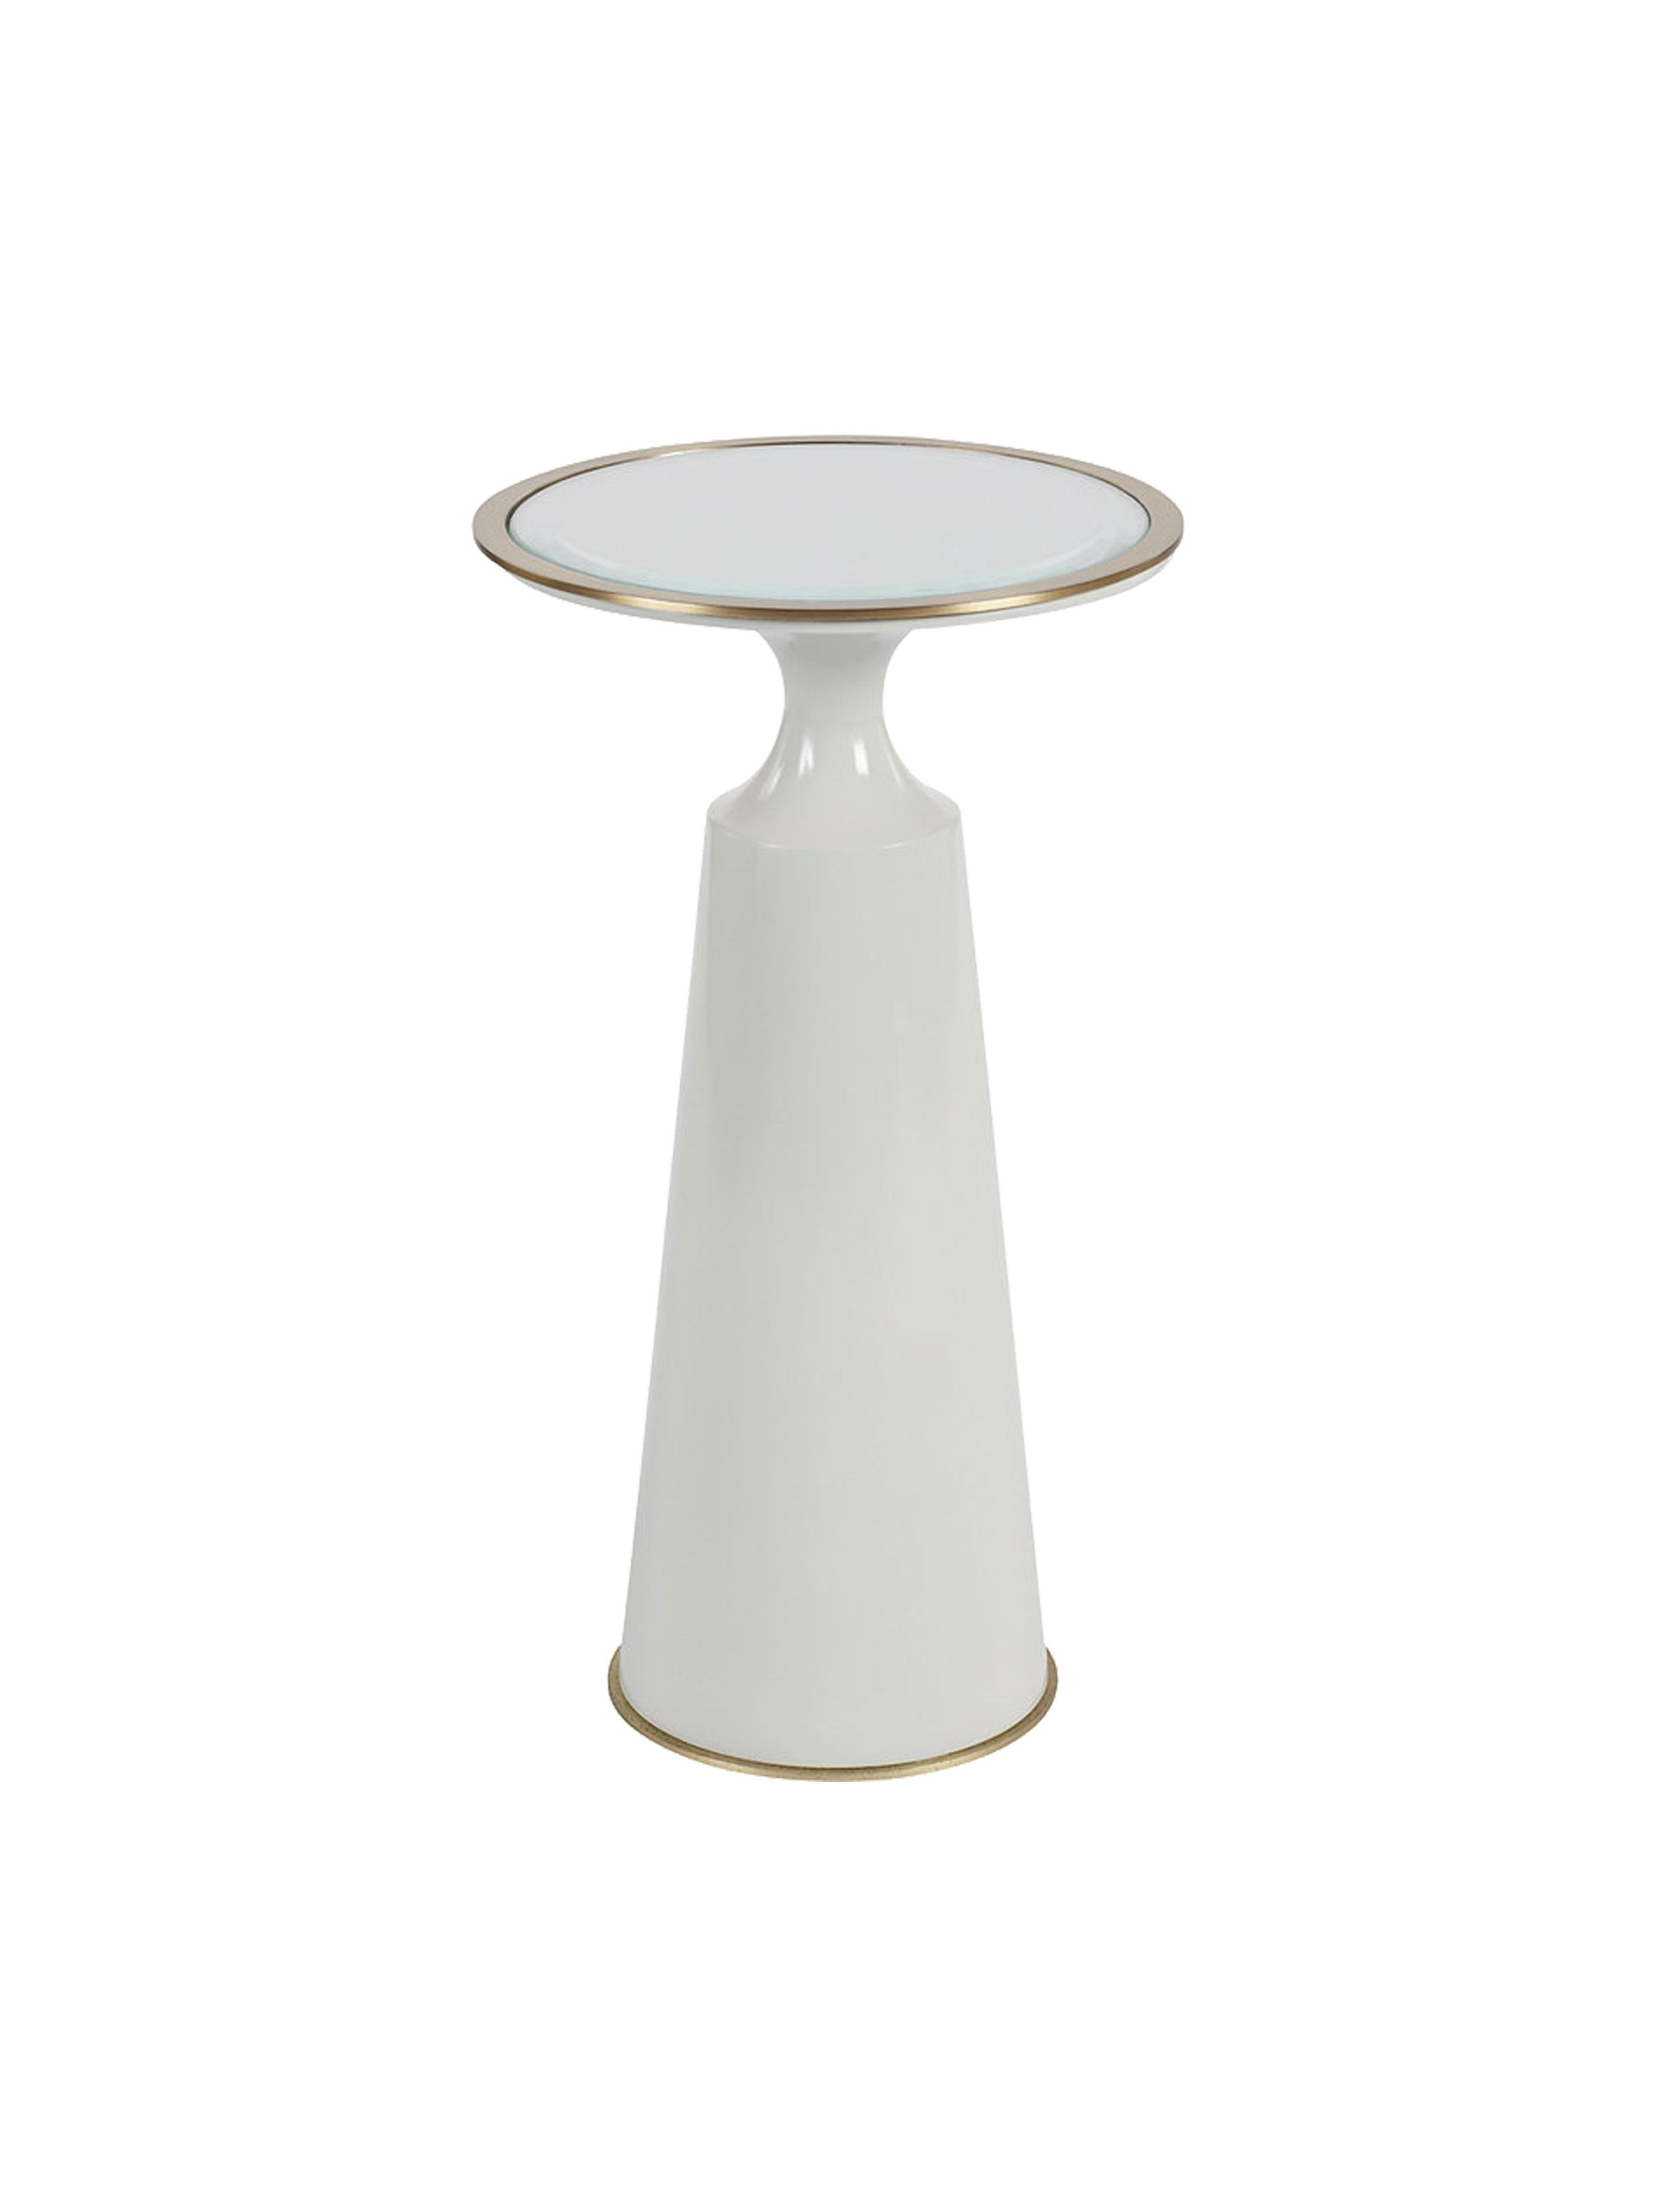 Contemporary Round Accent Table With Bronze Trim By Putnam Mason Round Accent Table Table Bronze